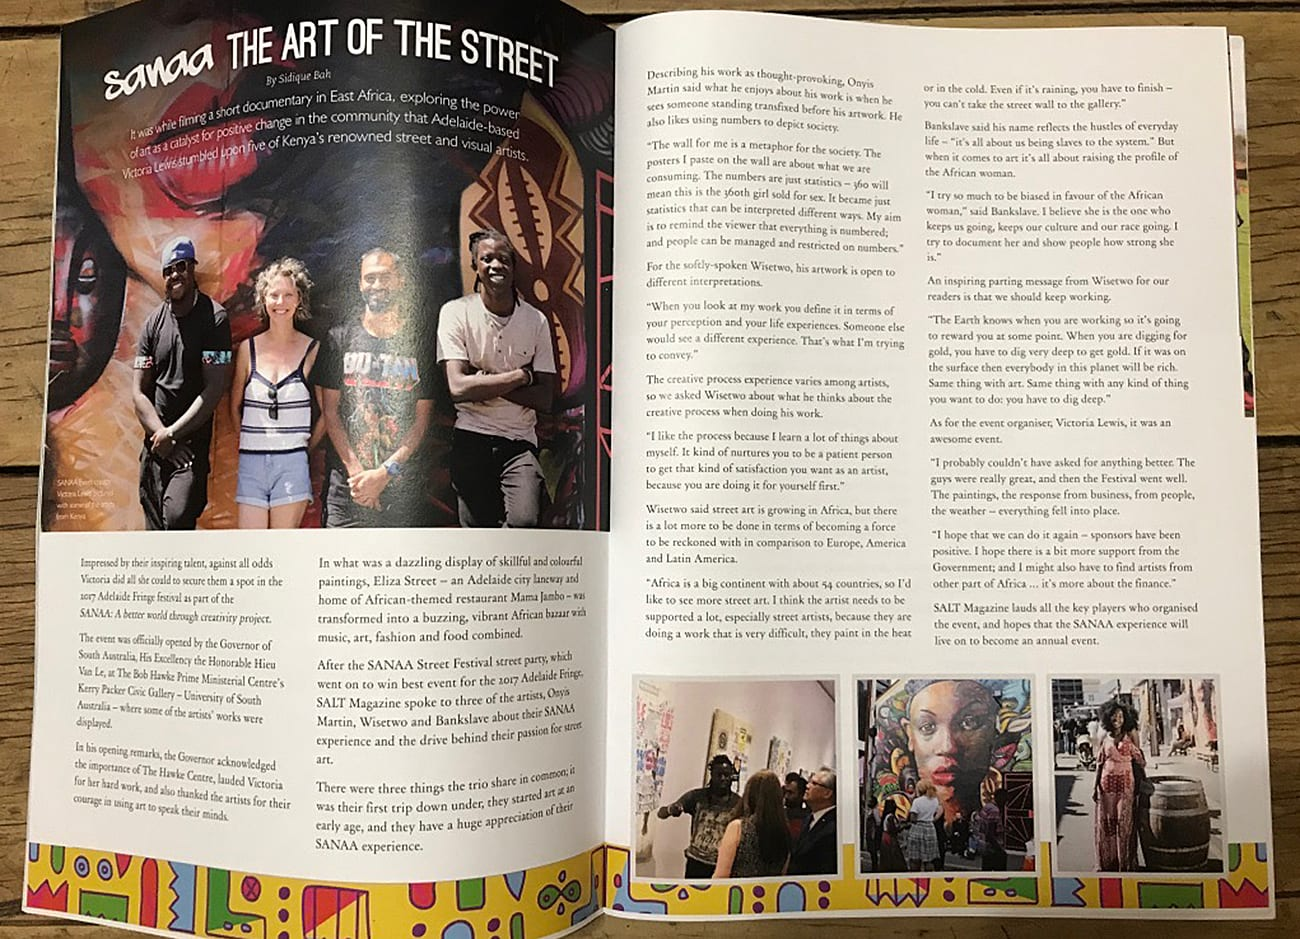 SANAA in the media: The Art on the Street